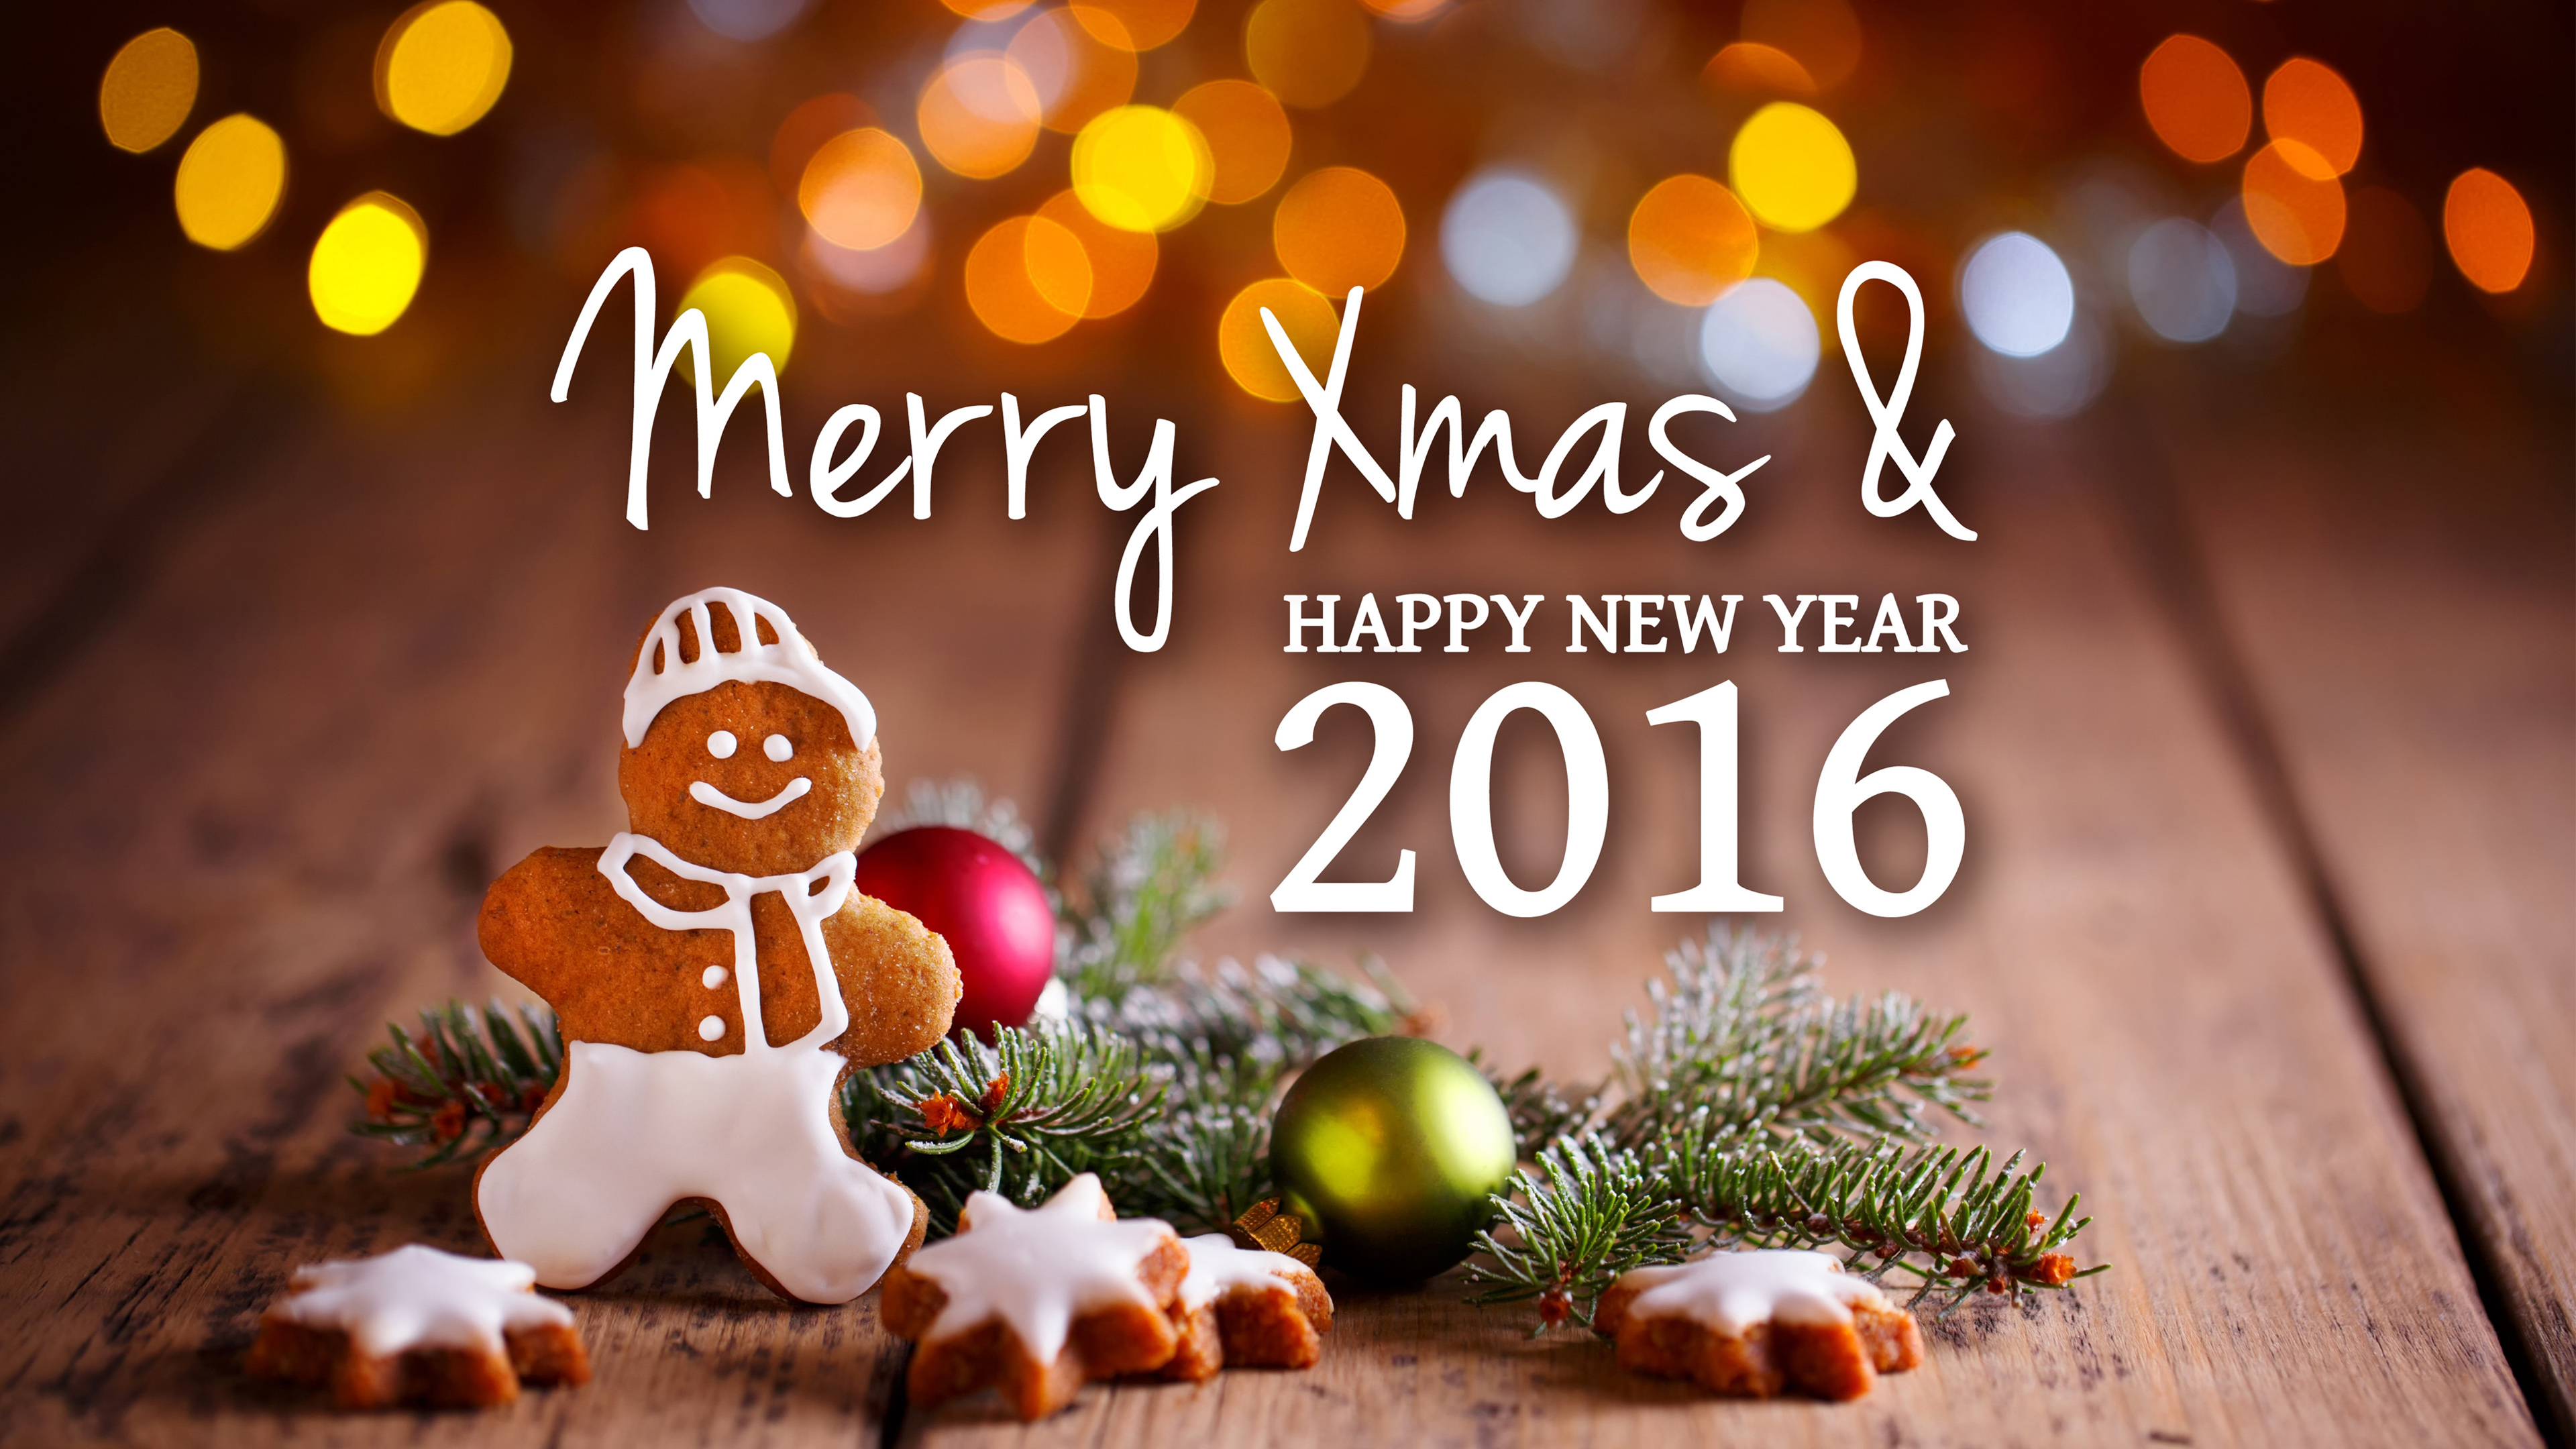 Merry Christmas & Happy New Year HD Wallpapers